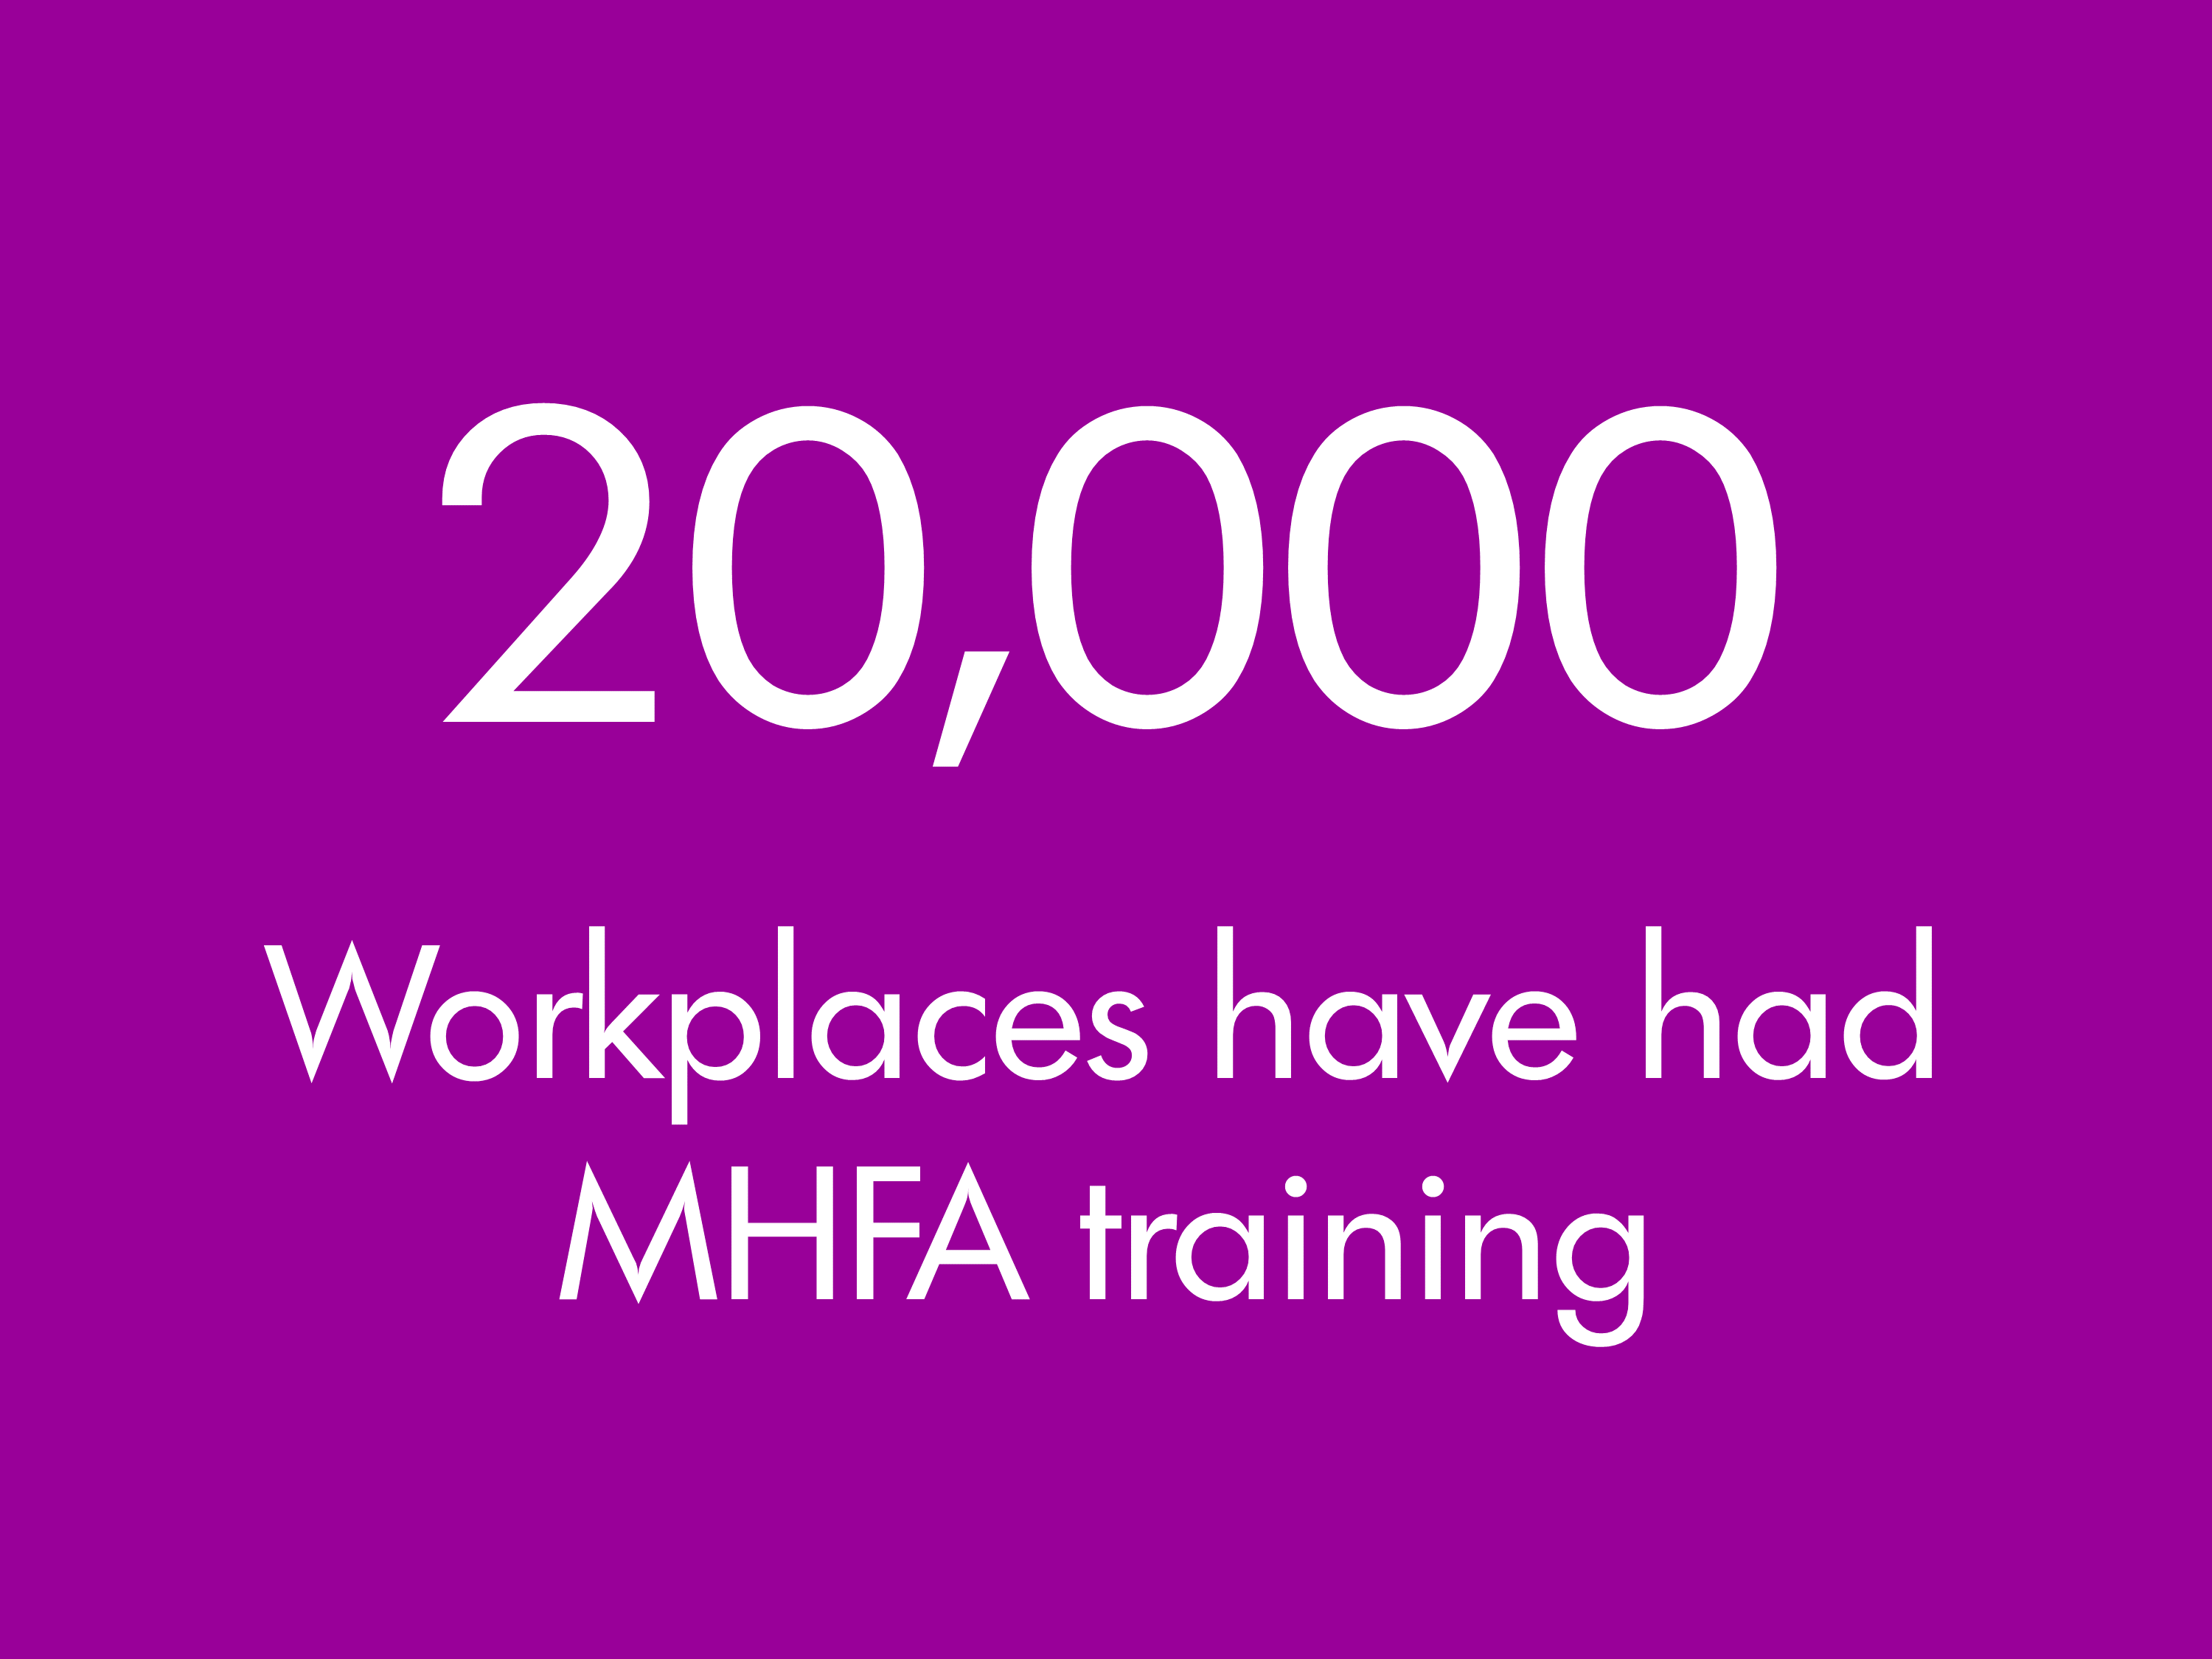 20,000 workplaces trained by MHFA